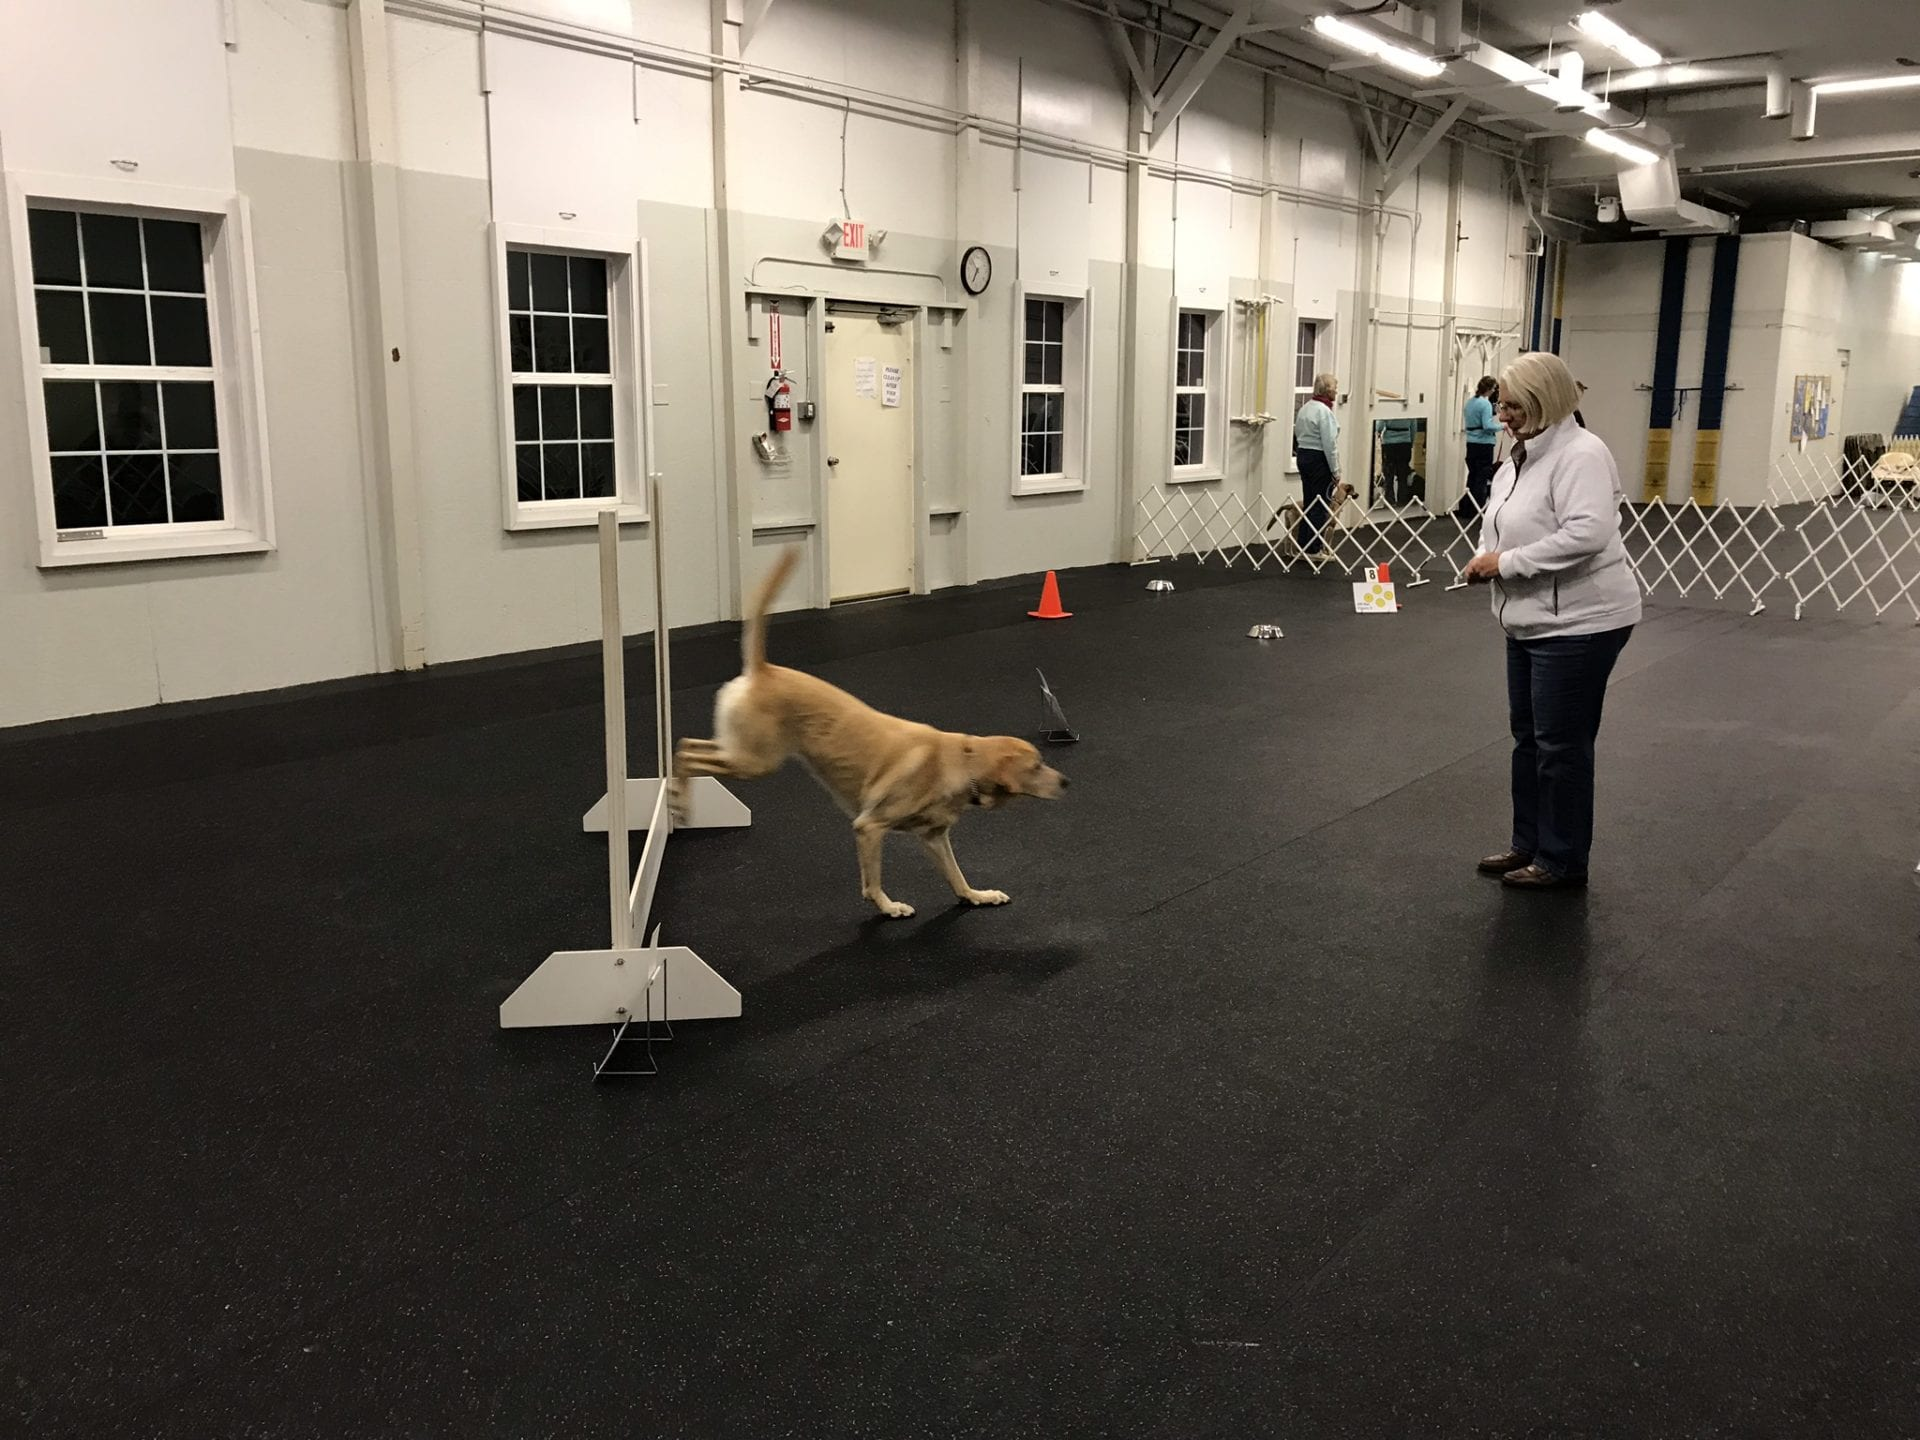 Dog Training Club, Newark, DE